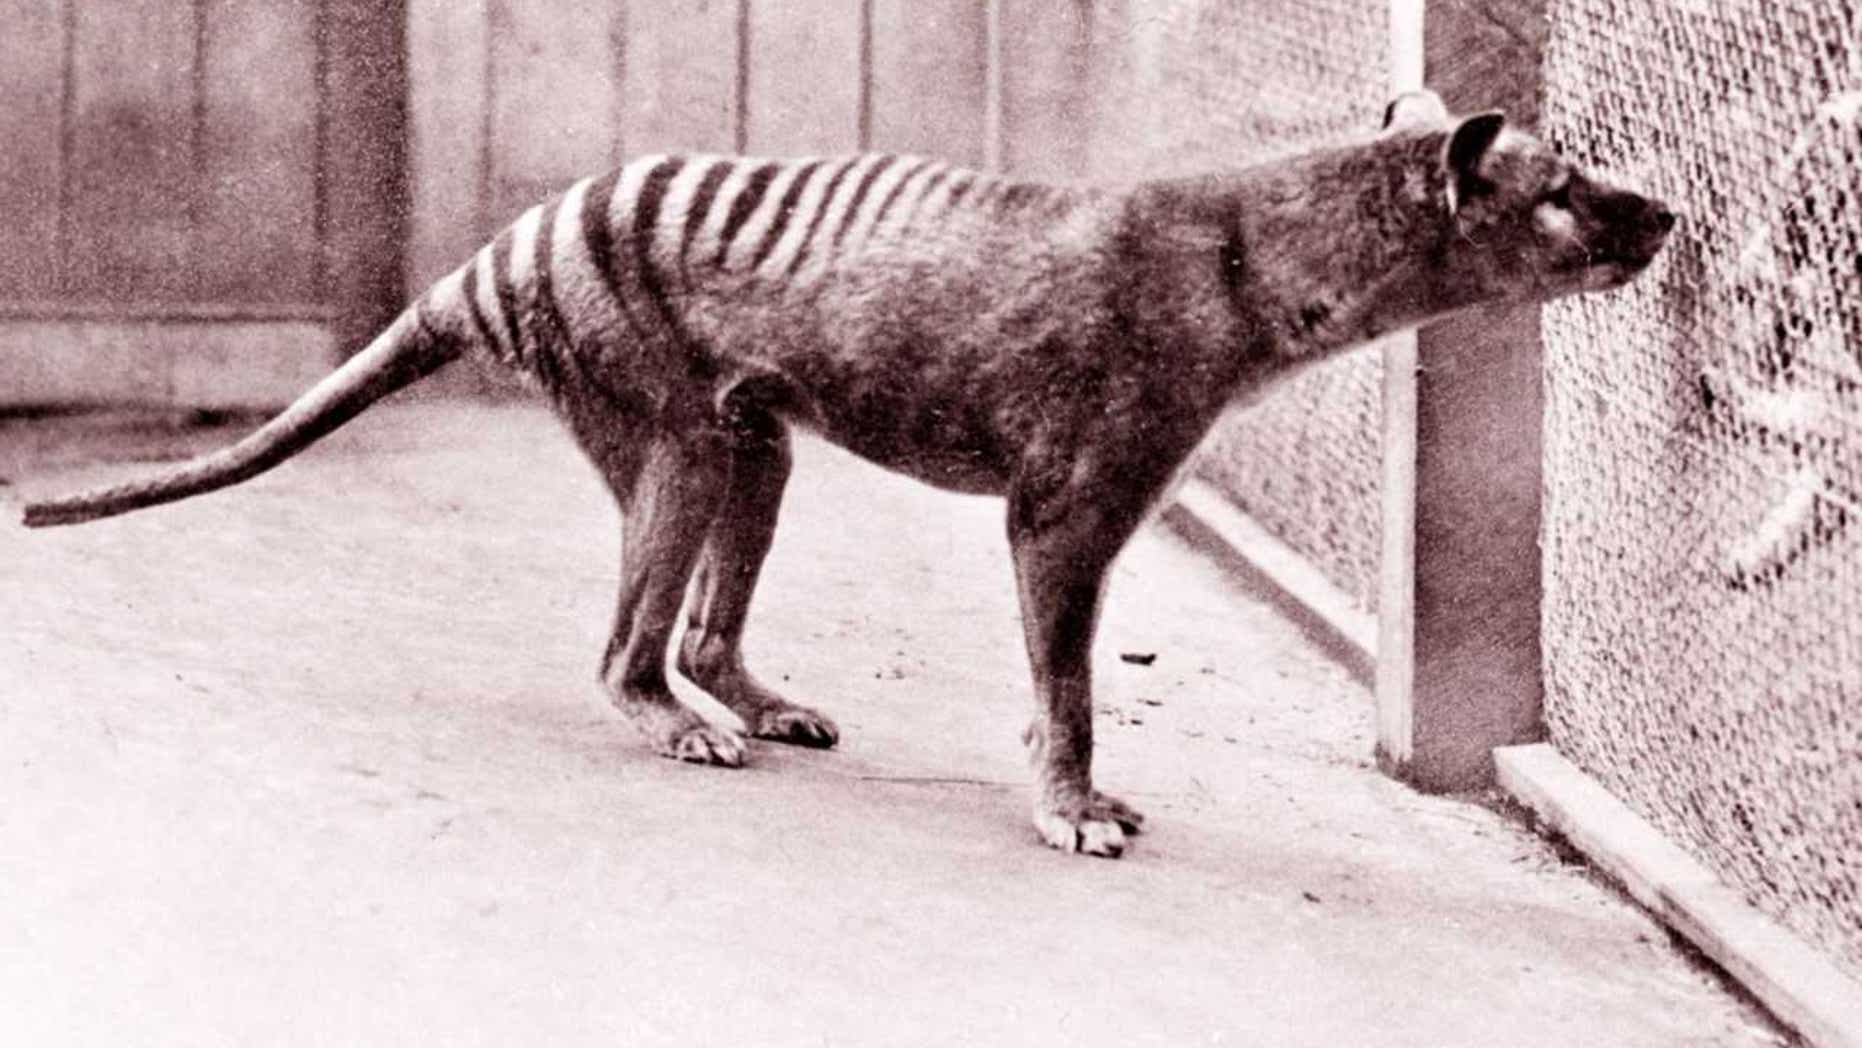 Benjamin, the last Tasmanian tiger in captivity, died in September 1936. (Credit: Getty Images)